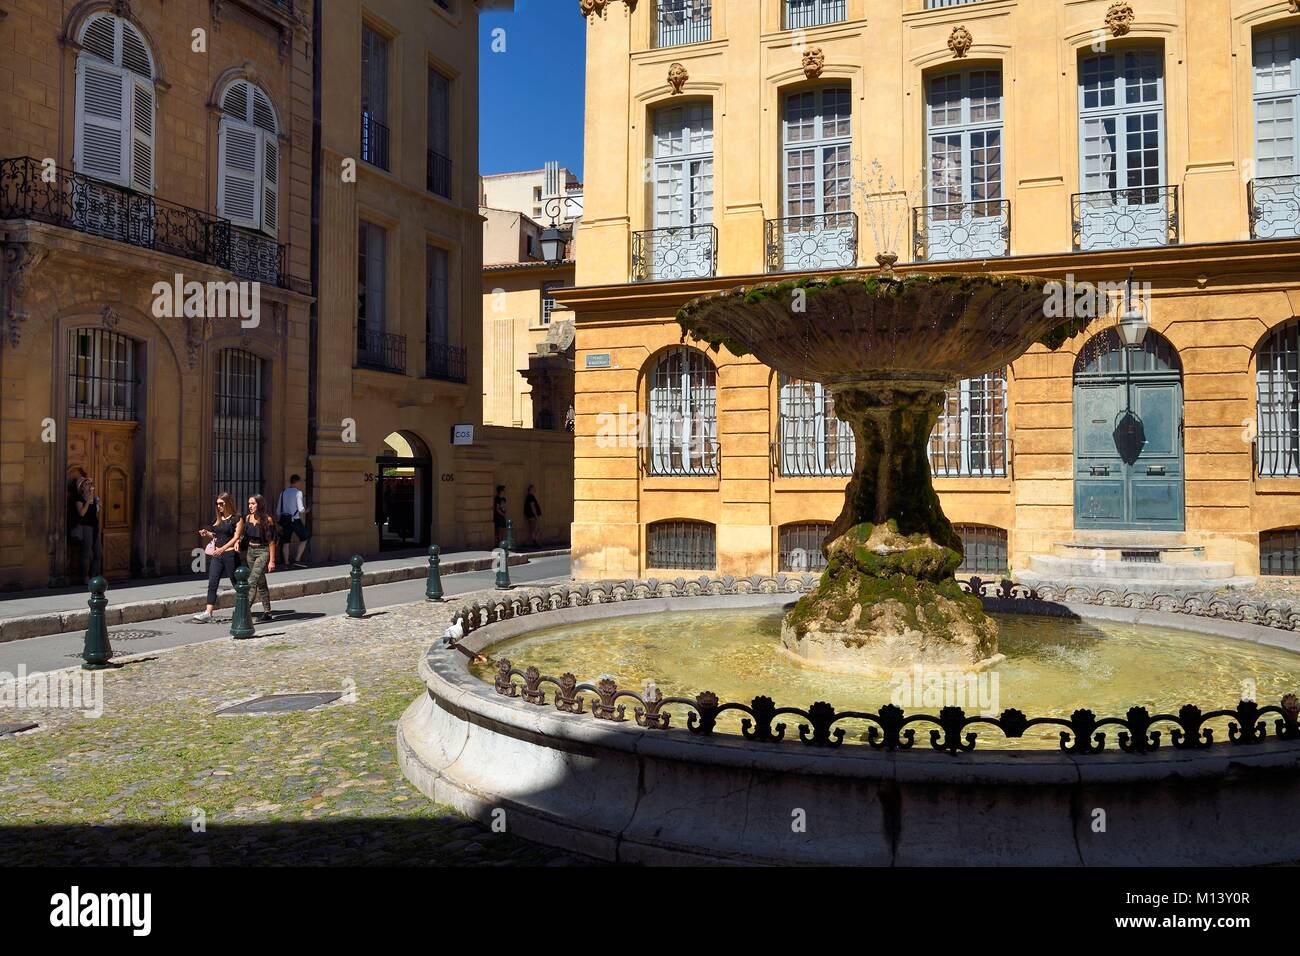 France, Bouches du Rhone, Aix en Provence, fountain of place Albertas - Stock Image